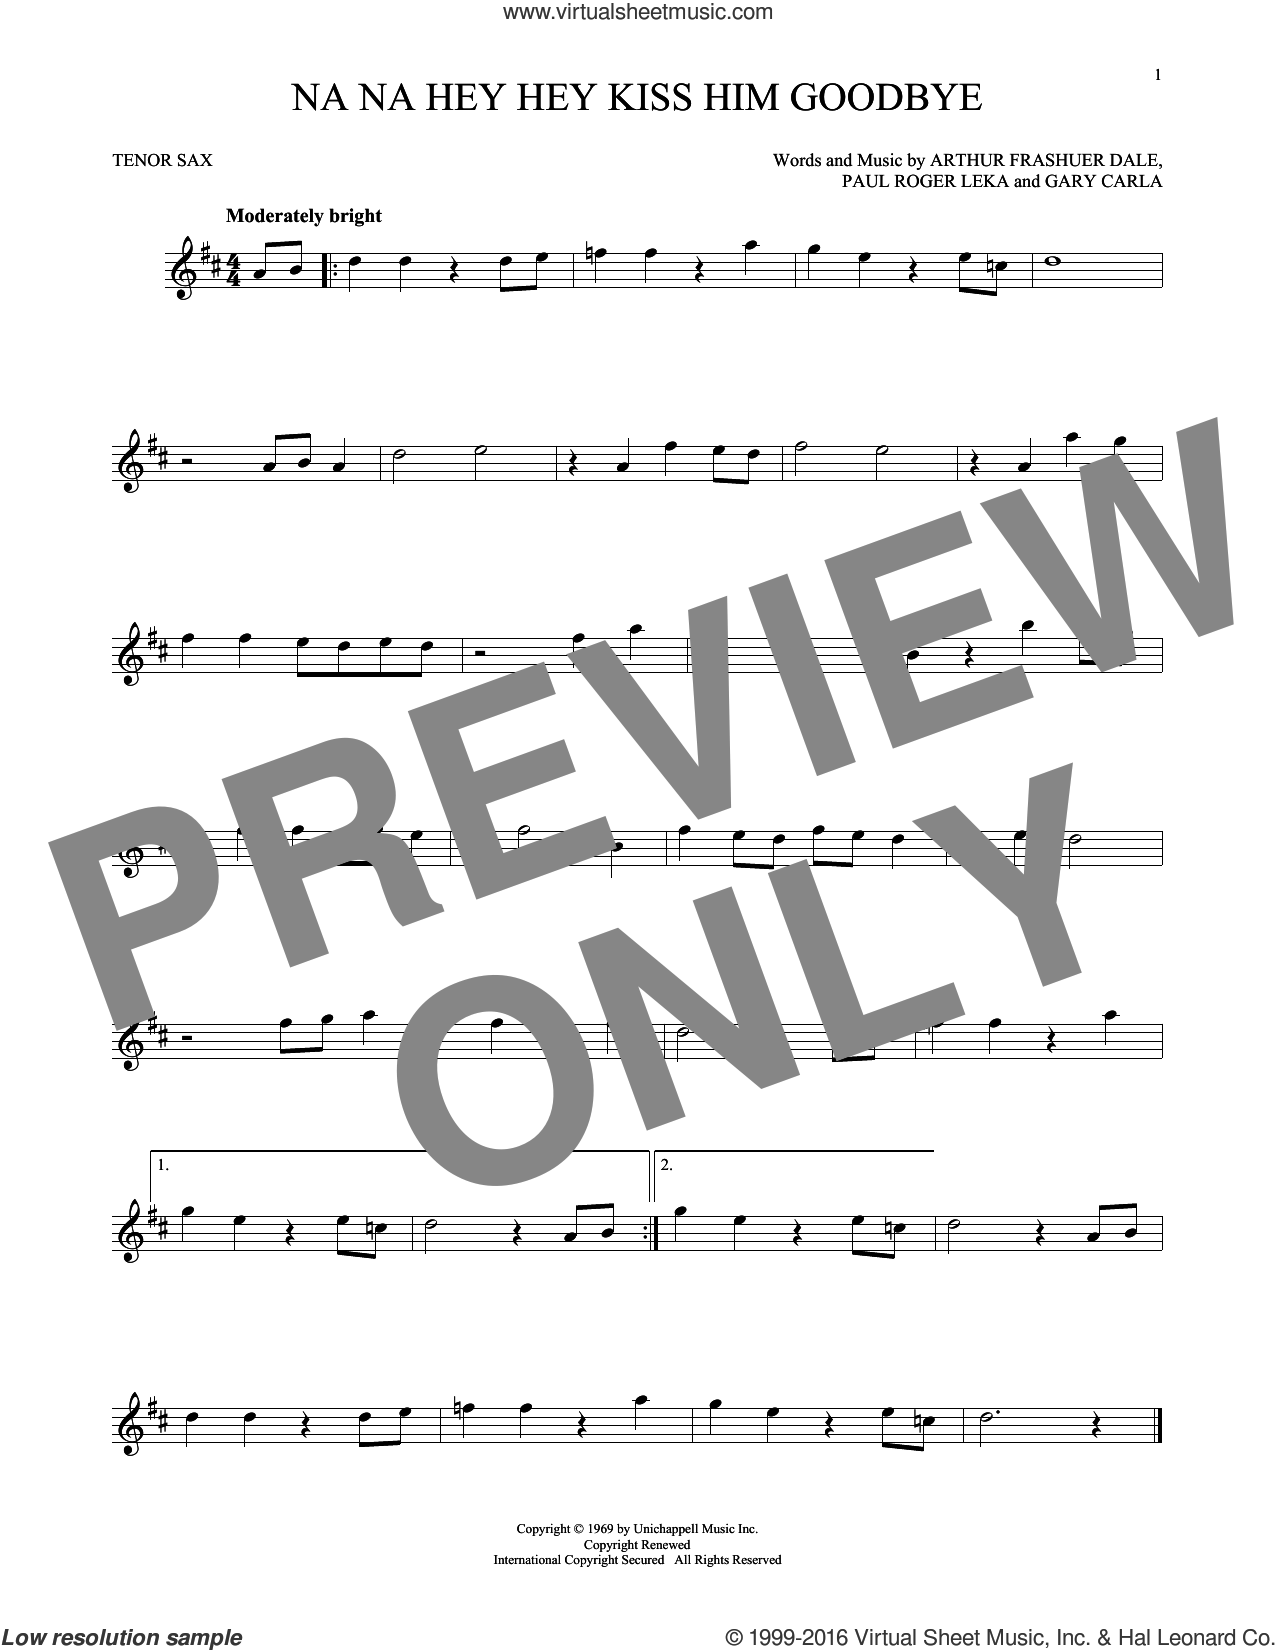 Na Na Hey Hey Kiss Him Goodbye sheet music for tenor saxophone solo by Paul Leka, Steam, Dale Frashuer and Gary De Carlo. Score Image Preview.